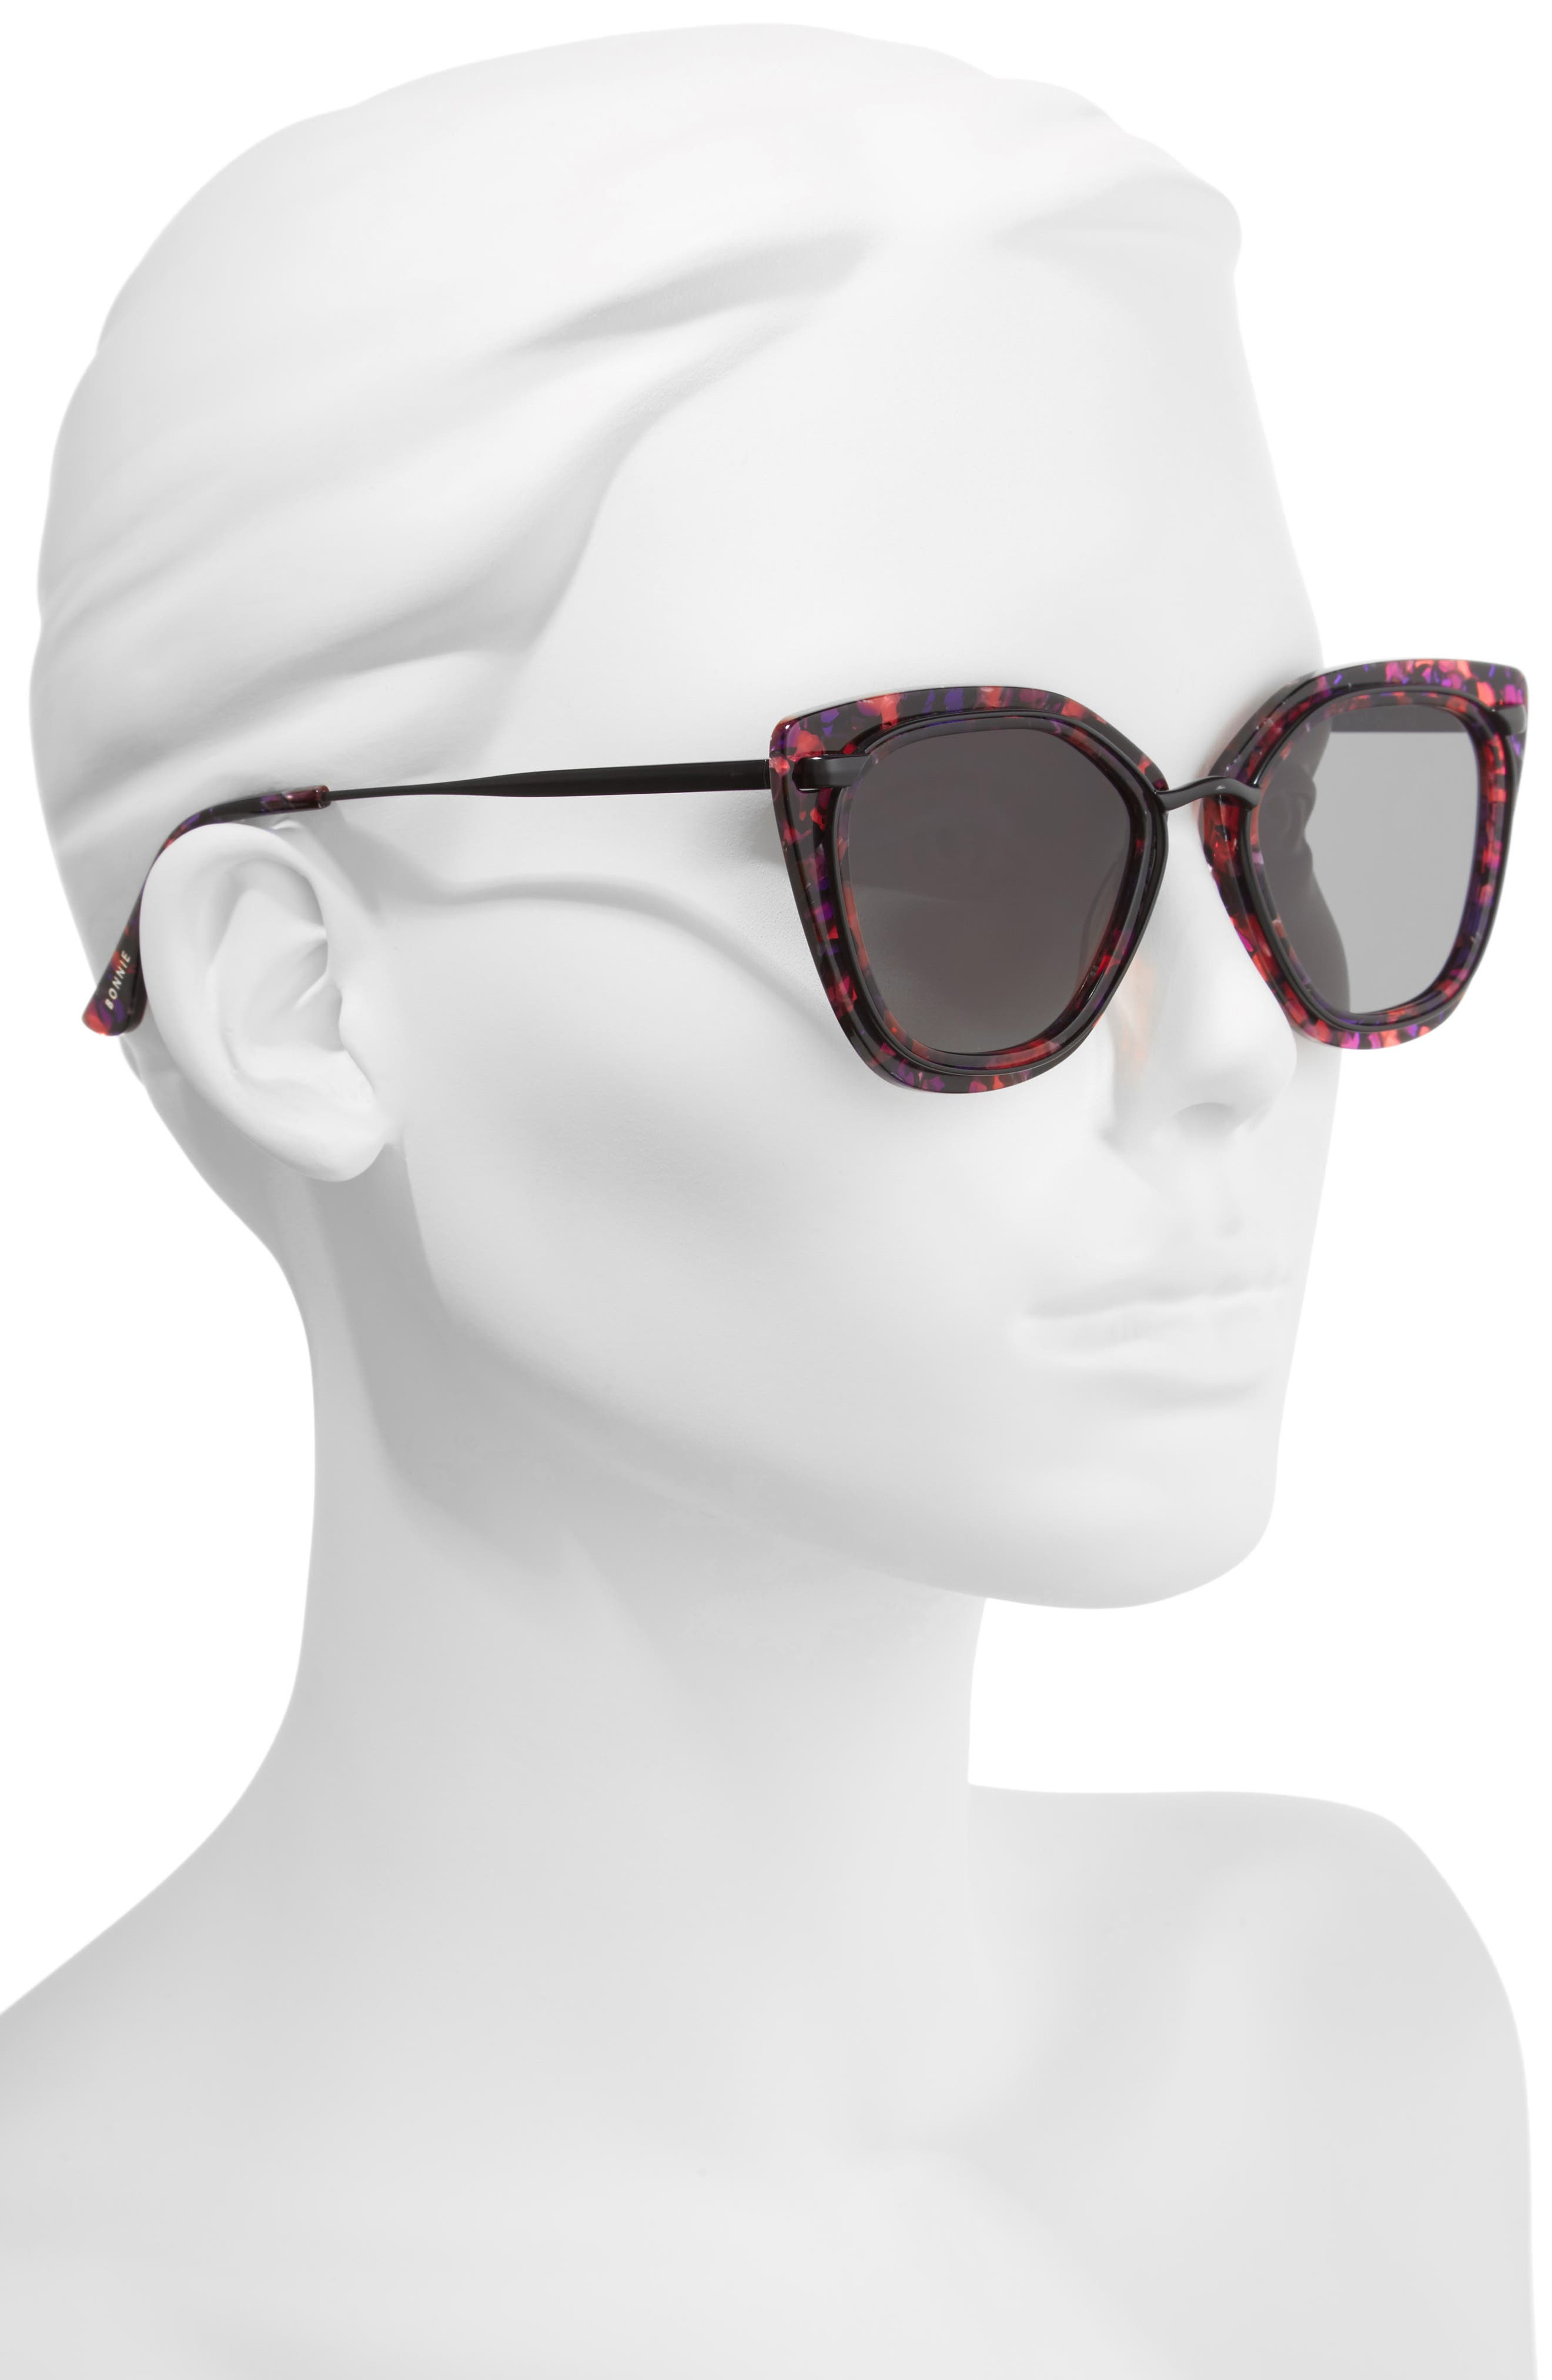 Temple 52mm Sunglasses,                             Alternate thumbnail 2, color,                             Purple Tortoise